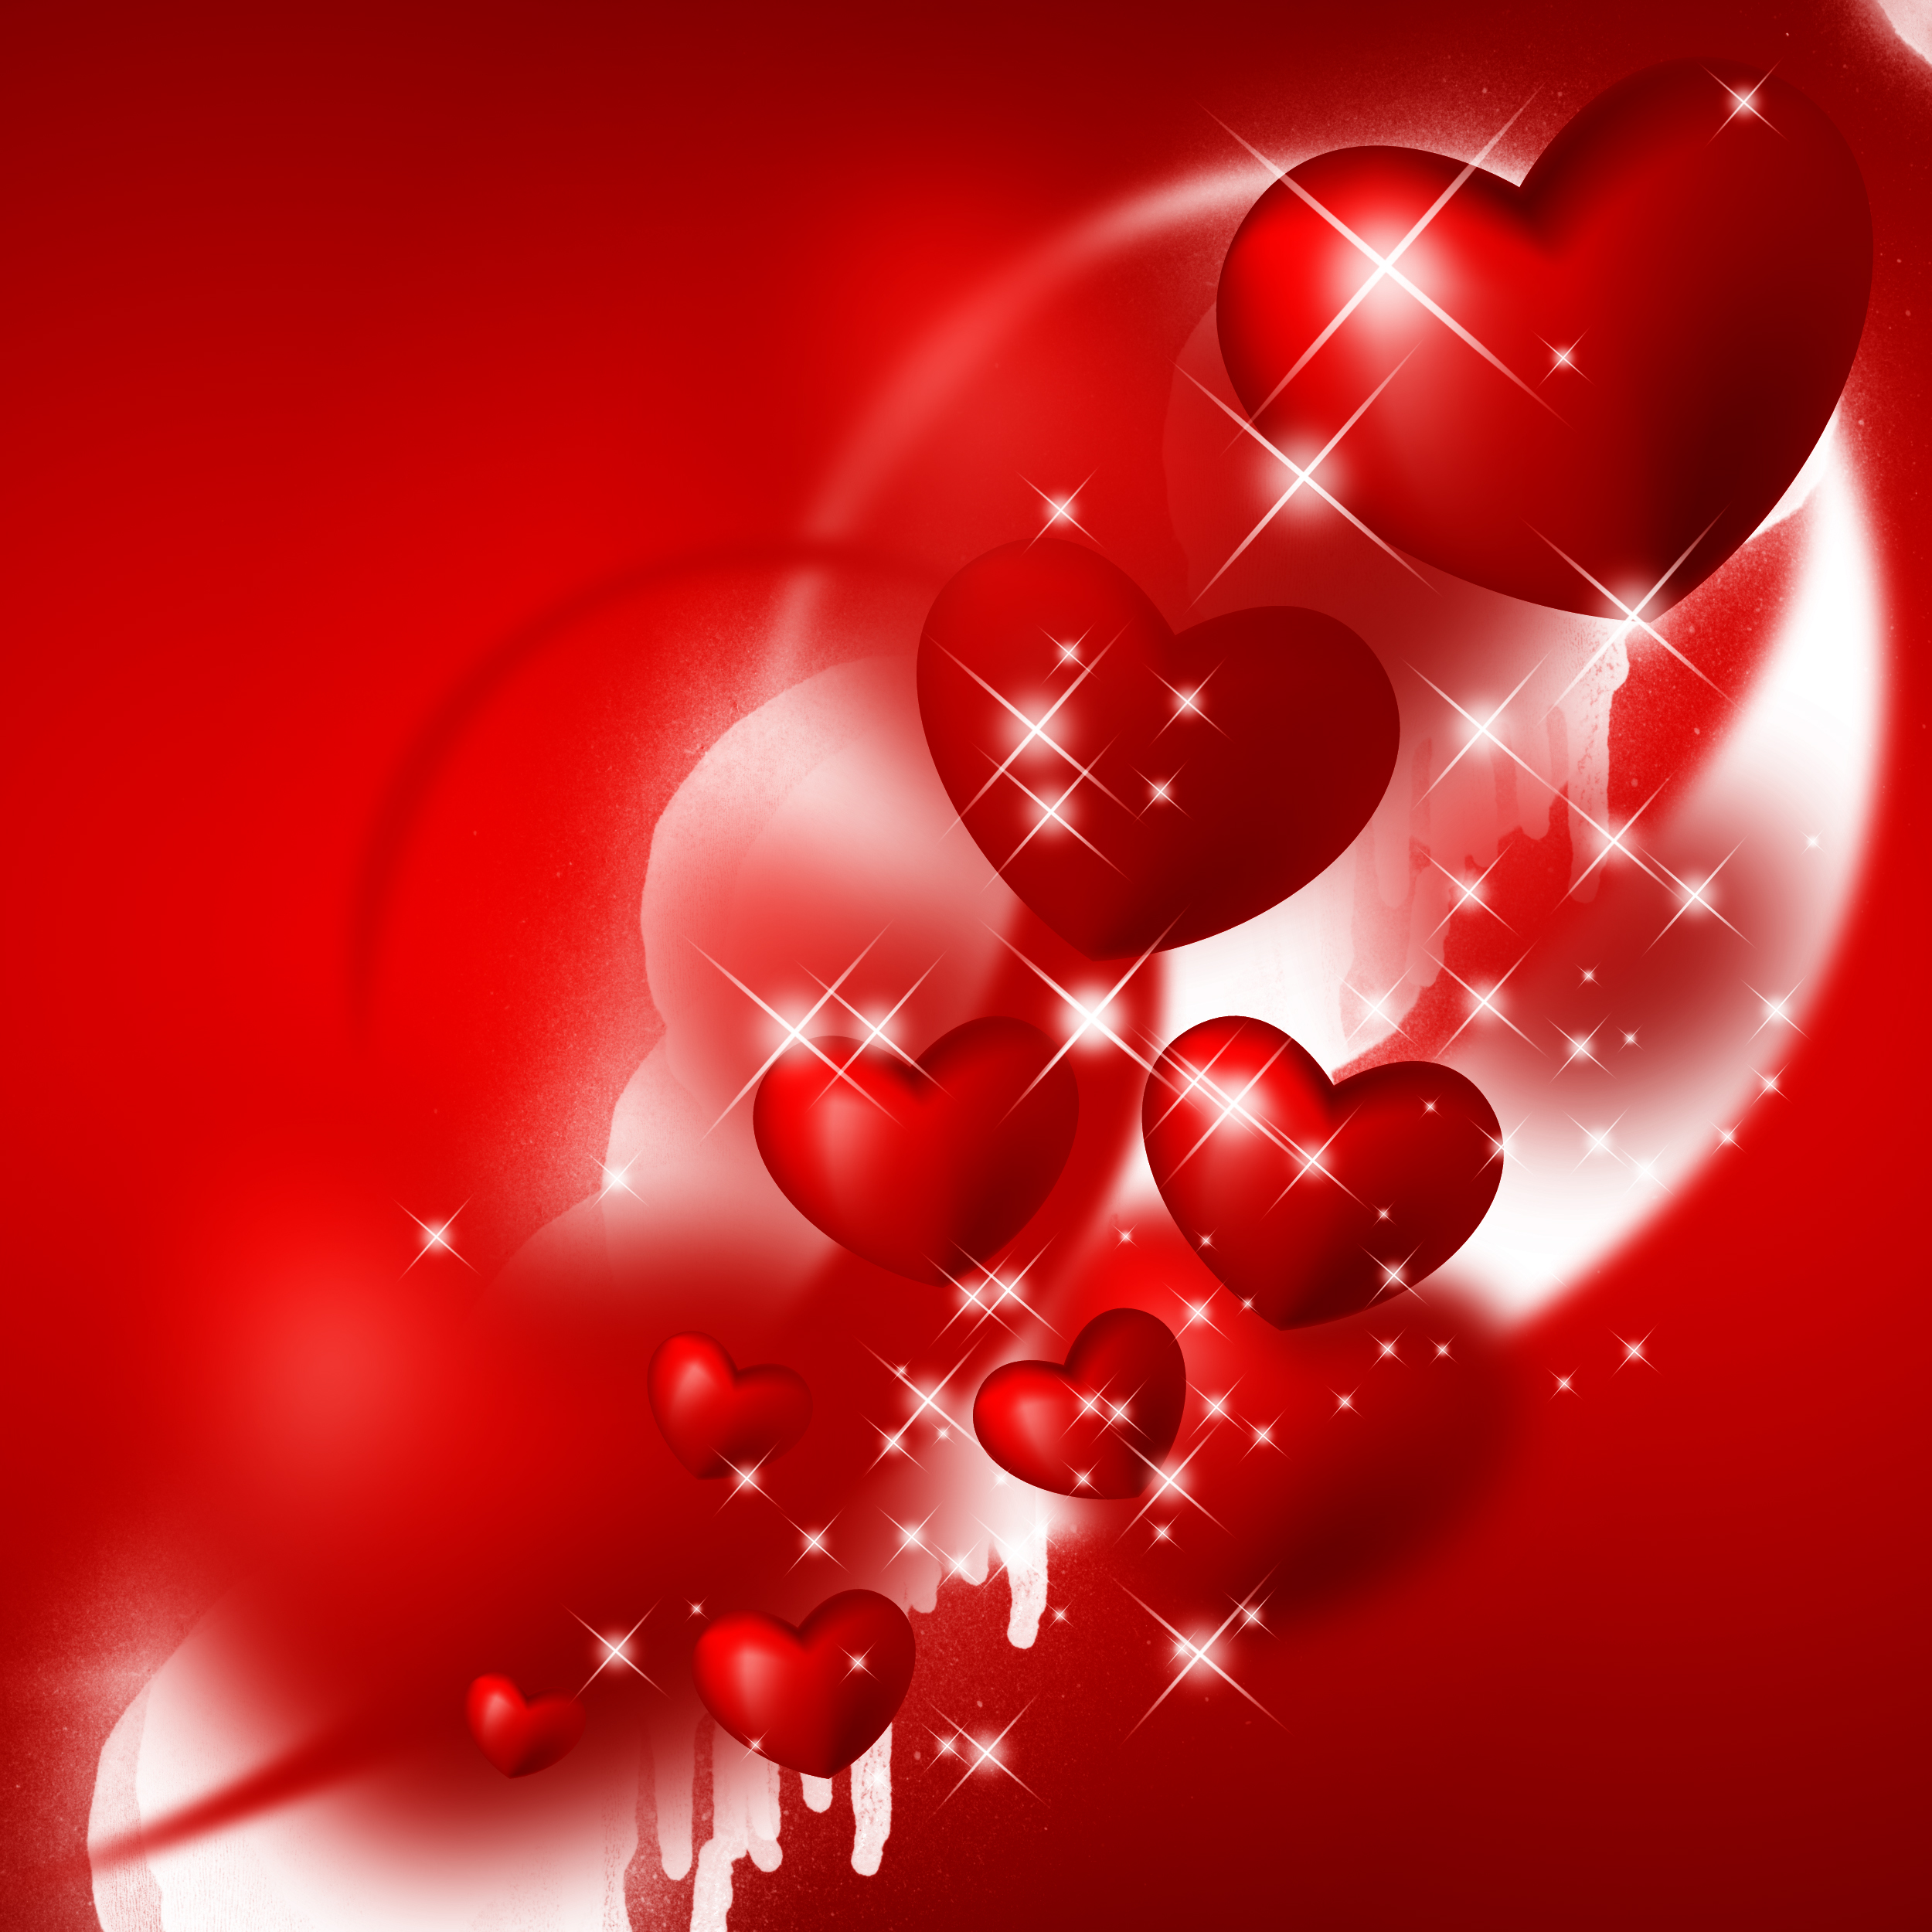 Valentines Background   PowerPoint Backgrounds for PowerPoint 2500x2500